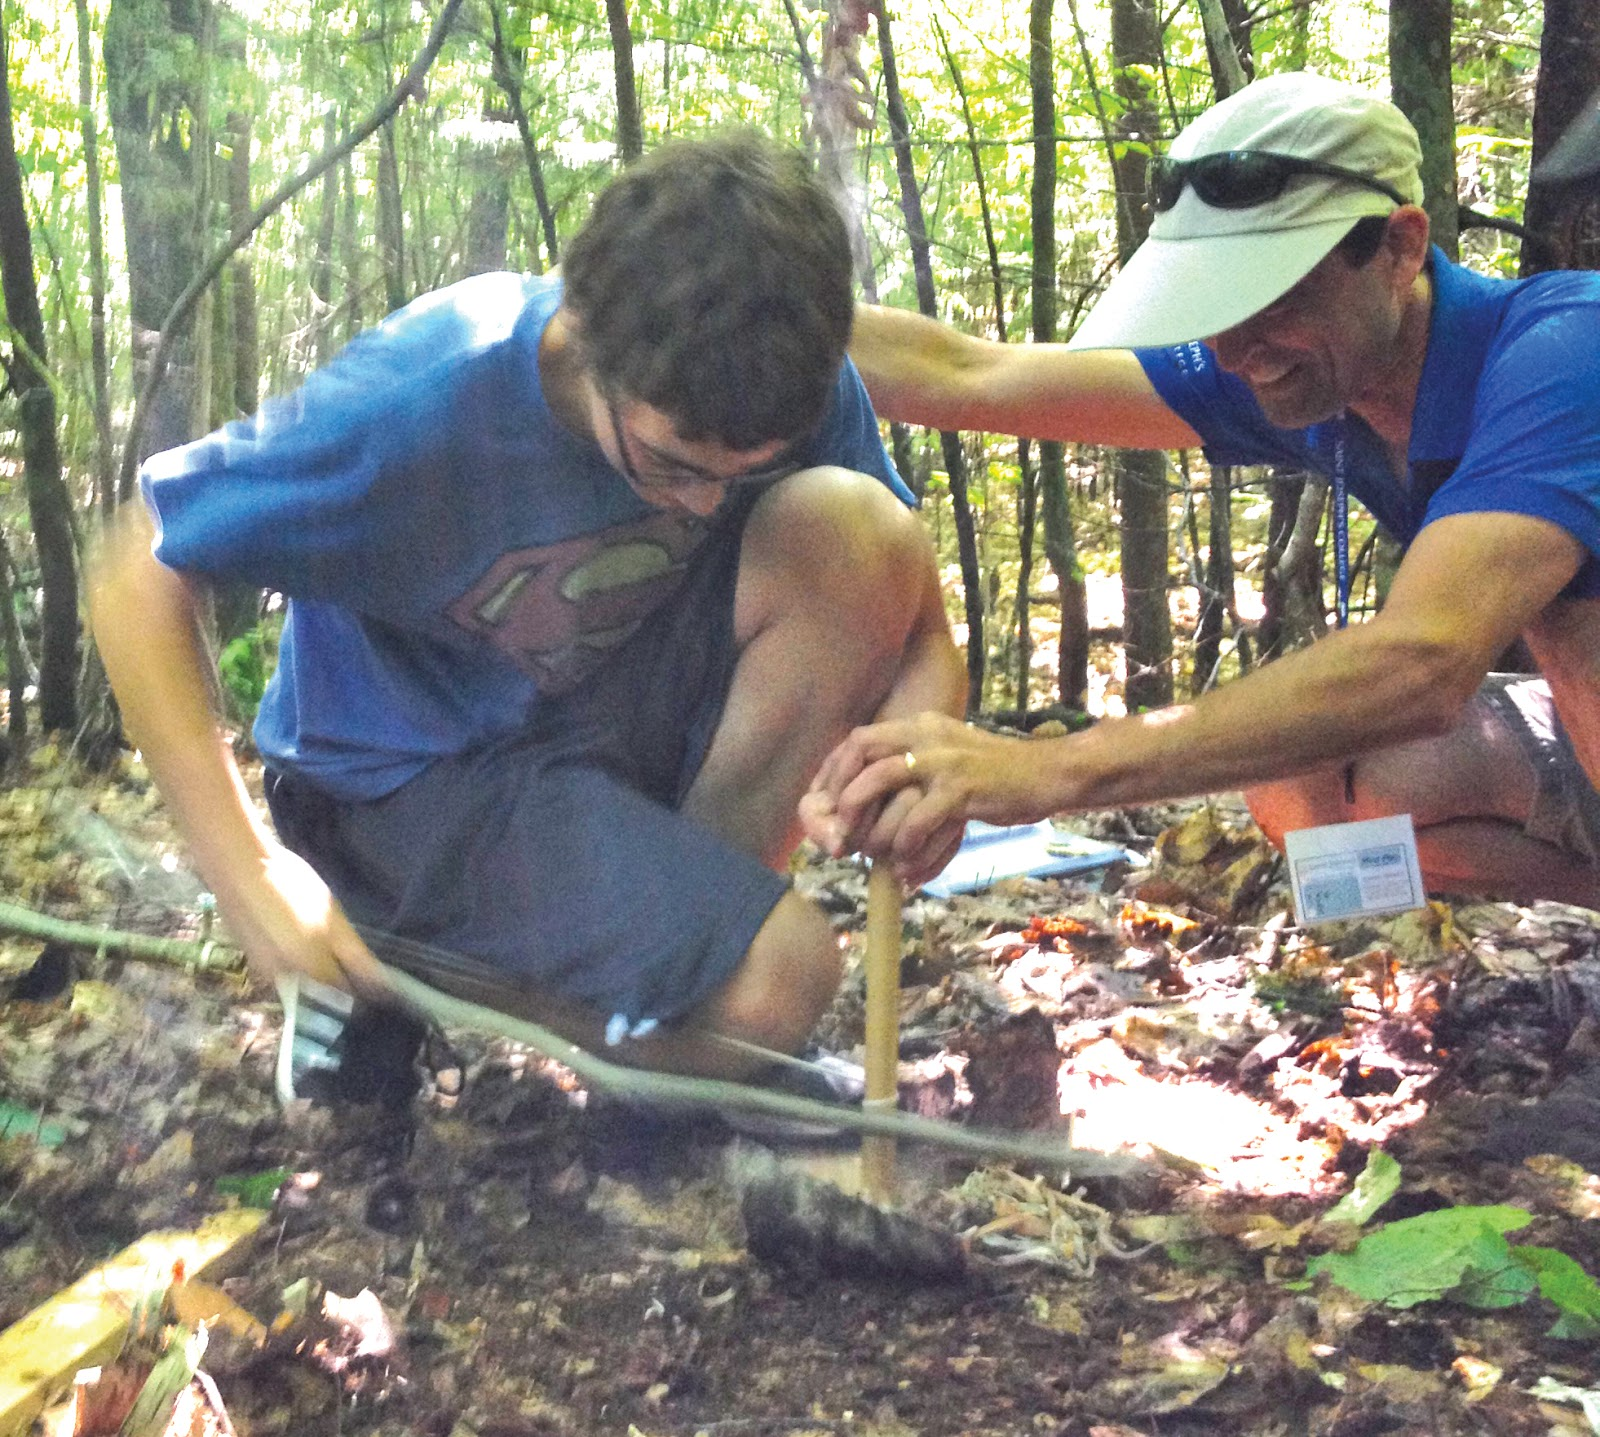 Survival Skills: The Windham Eagle: High School Students Learn Survival